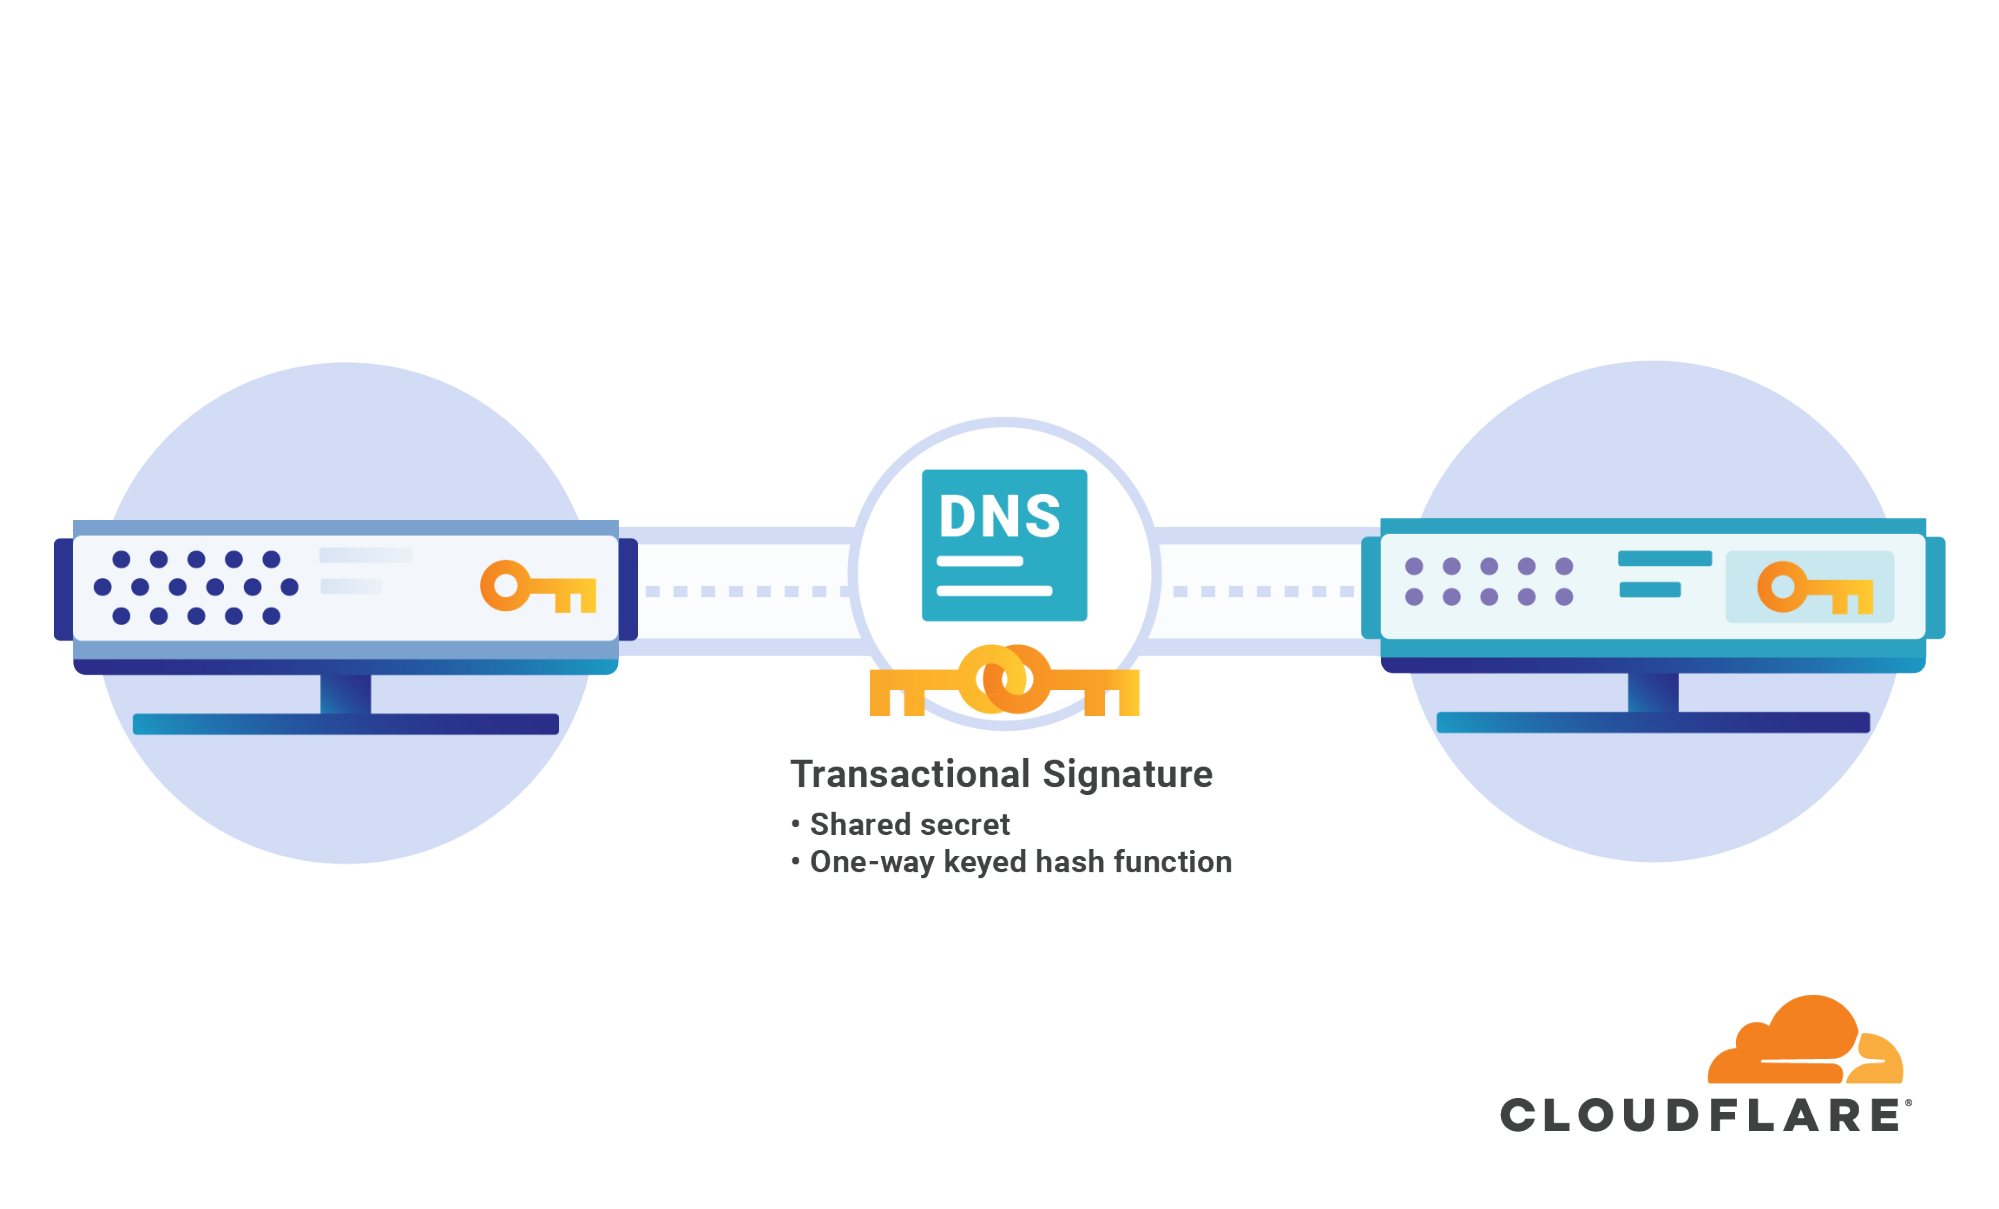 Secondary DNS — A faster, more resilient way to serve your DNS records